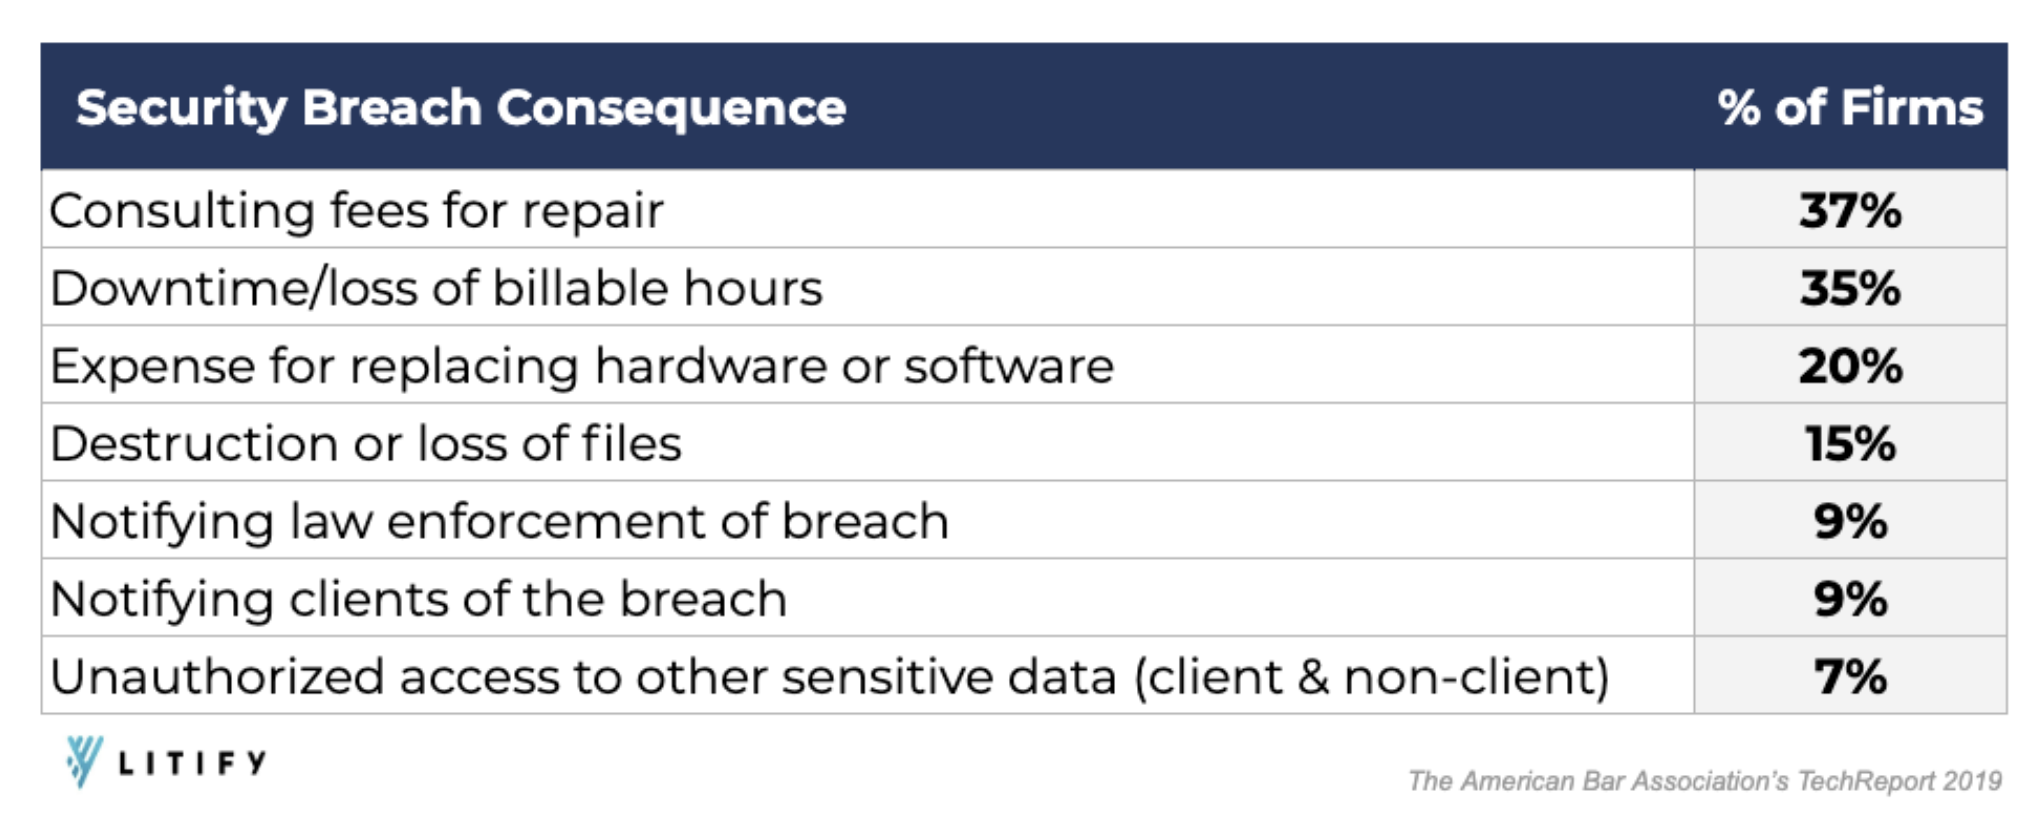 Security Breach Consequences Data from The American Bar Association